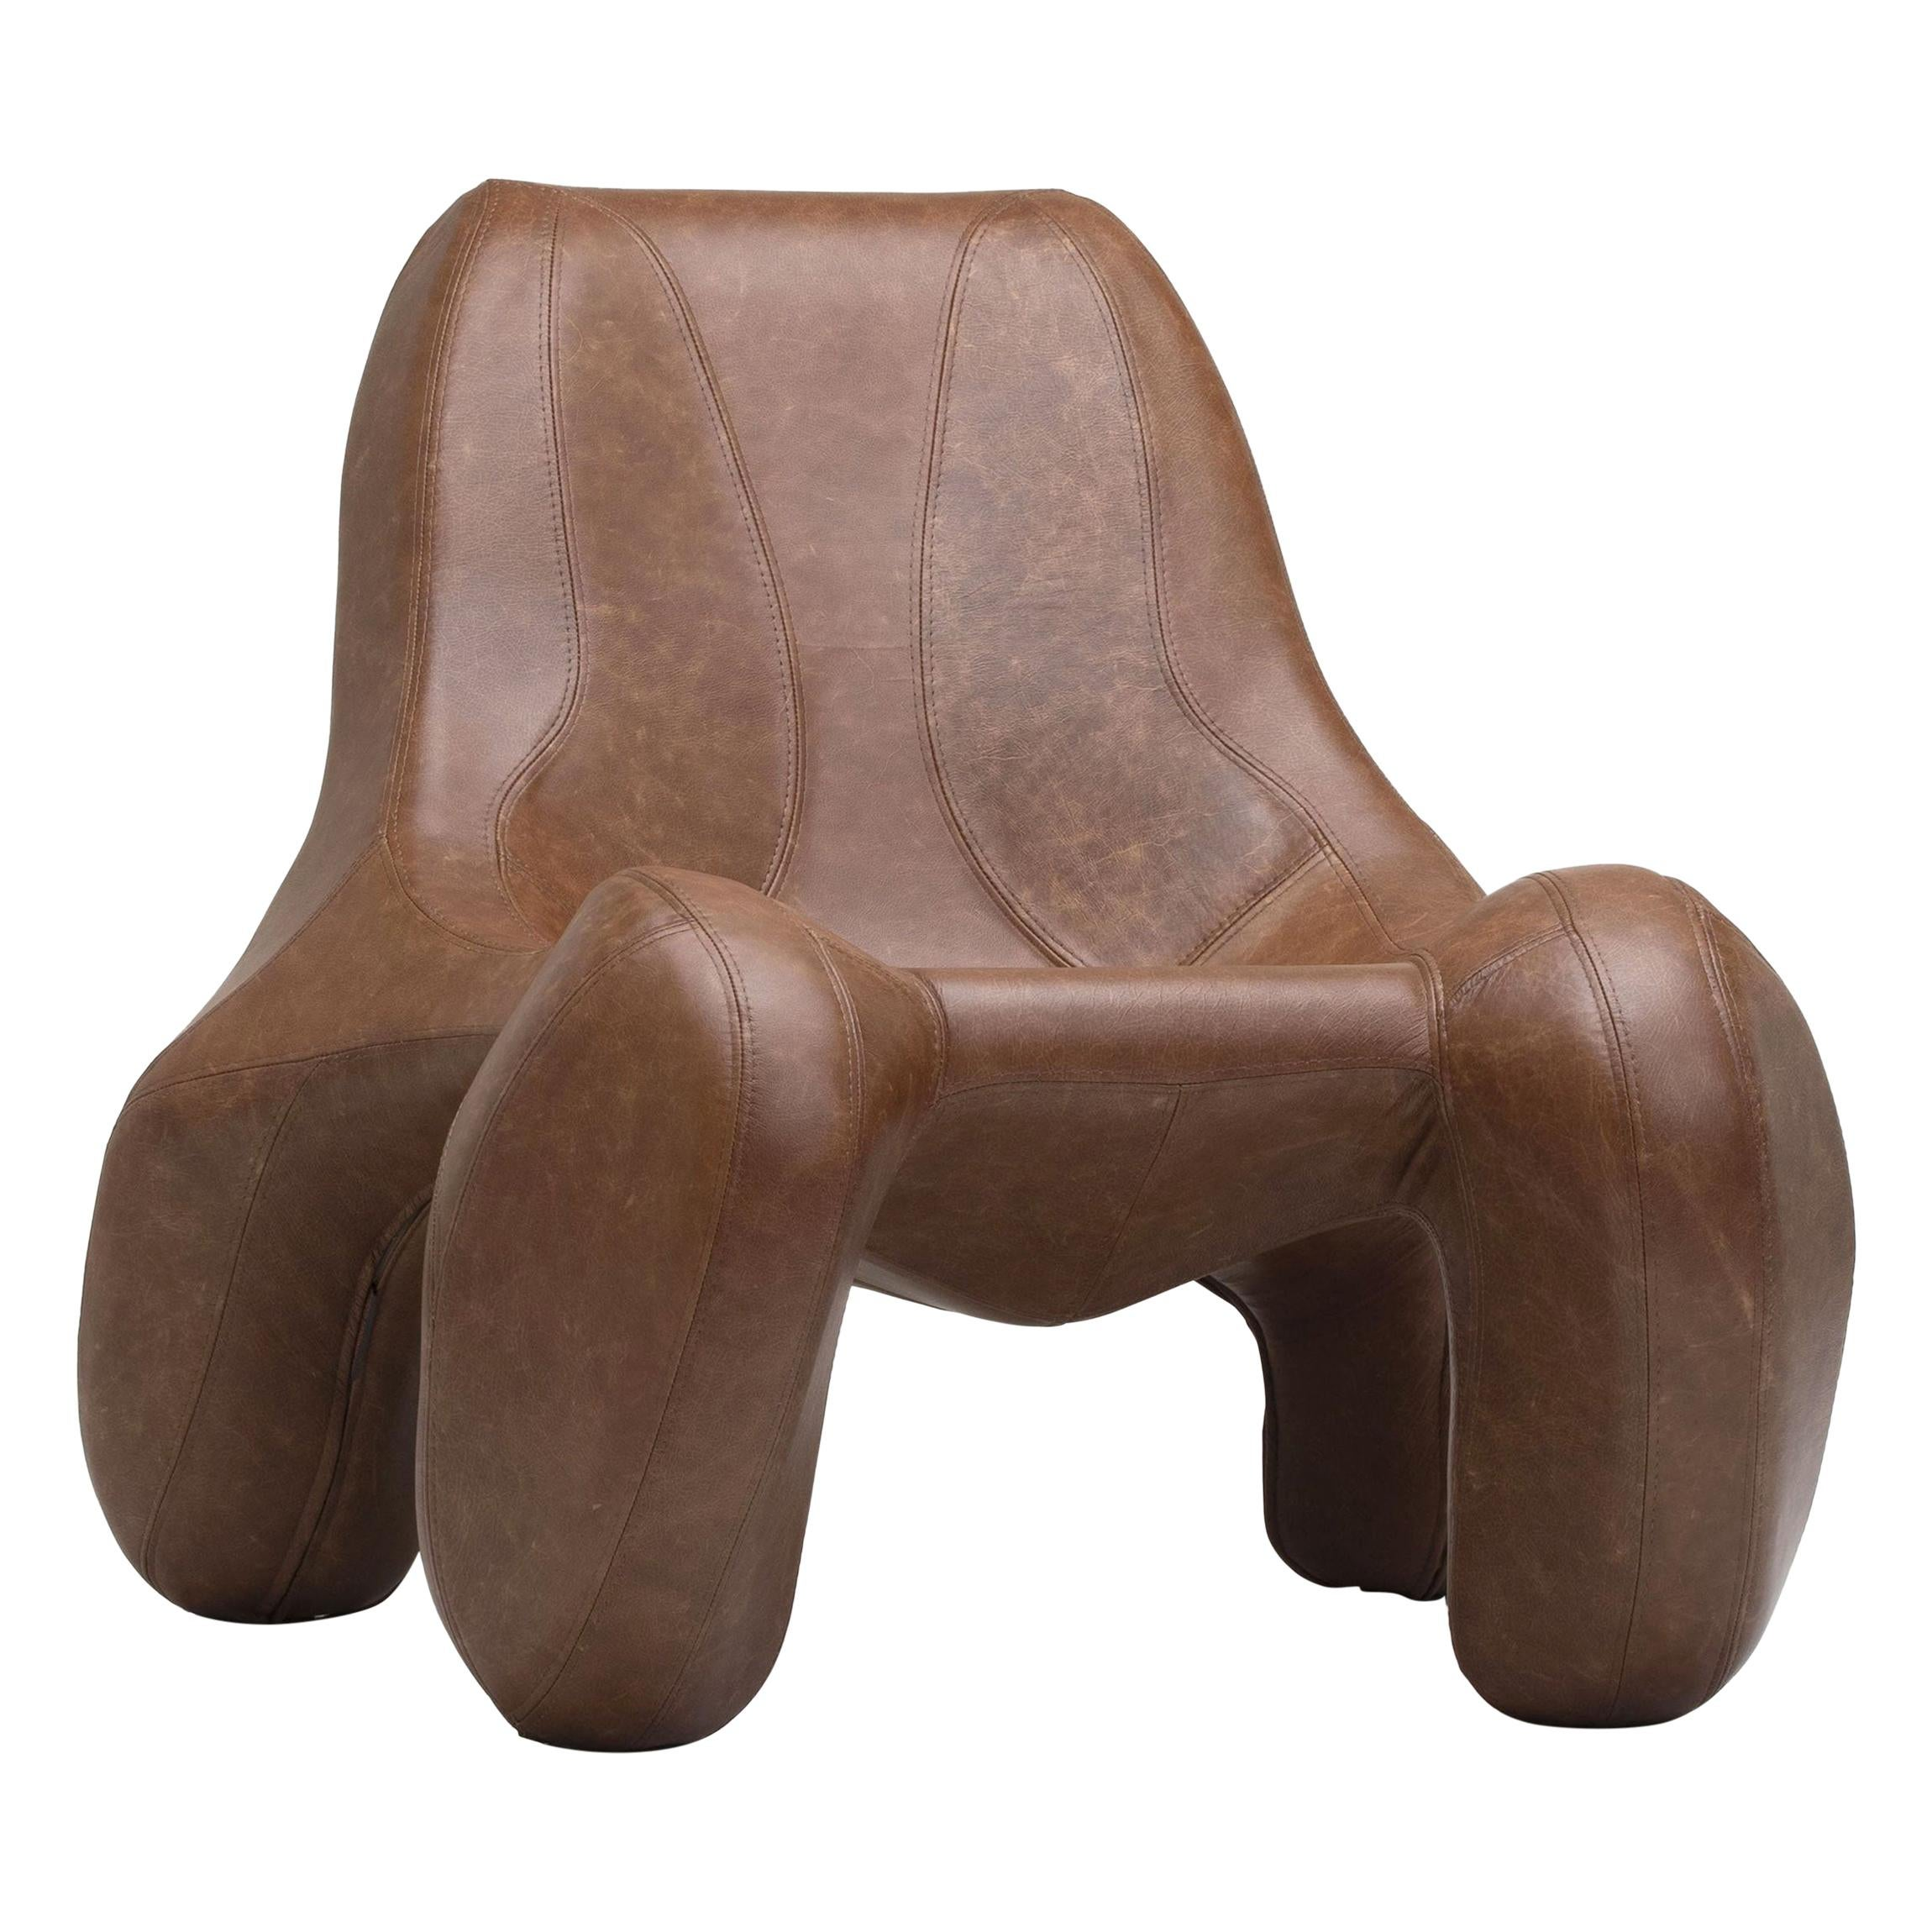 The Max Jungblut Club 114 Vegas Camel Leather